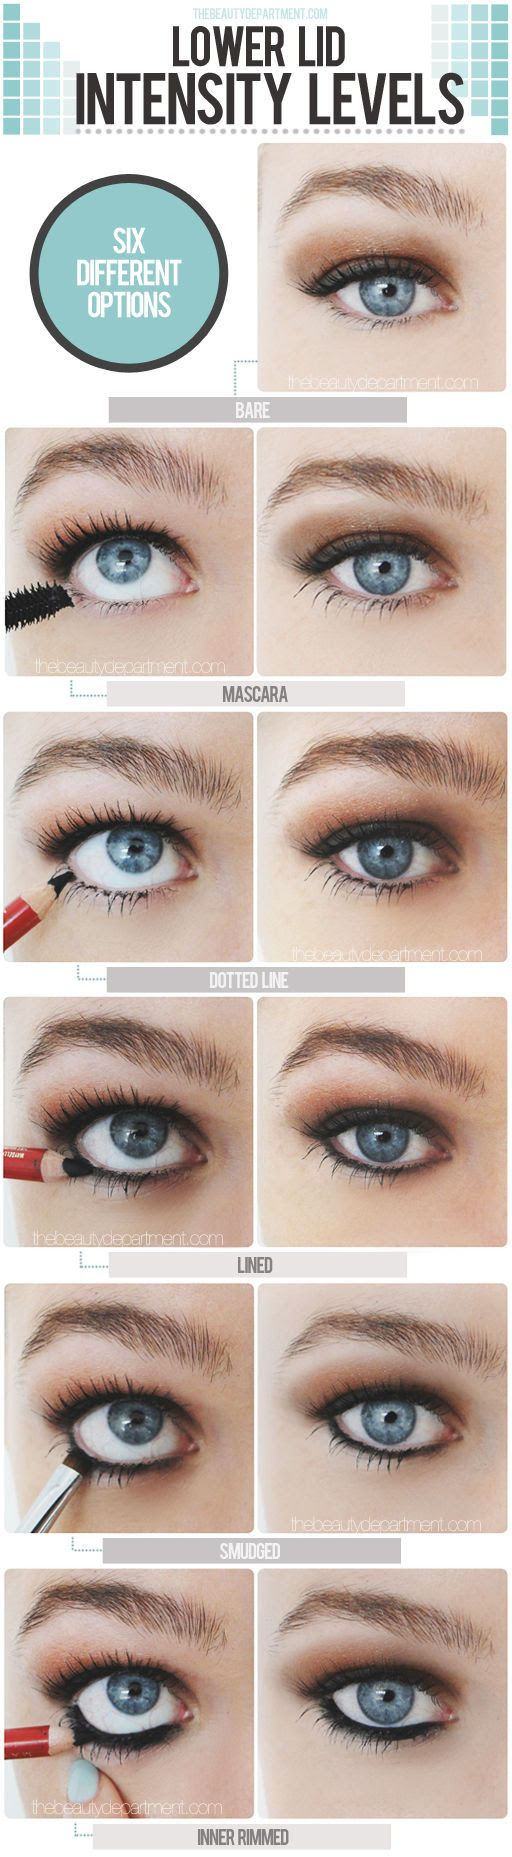 lower lid intensity levels #beauty #makeup